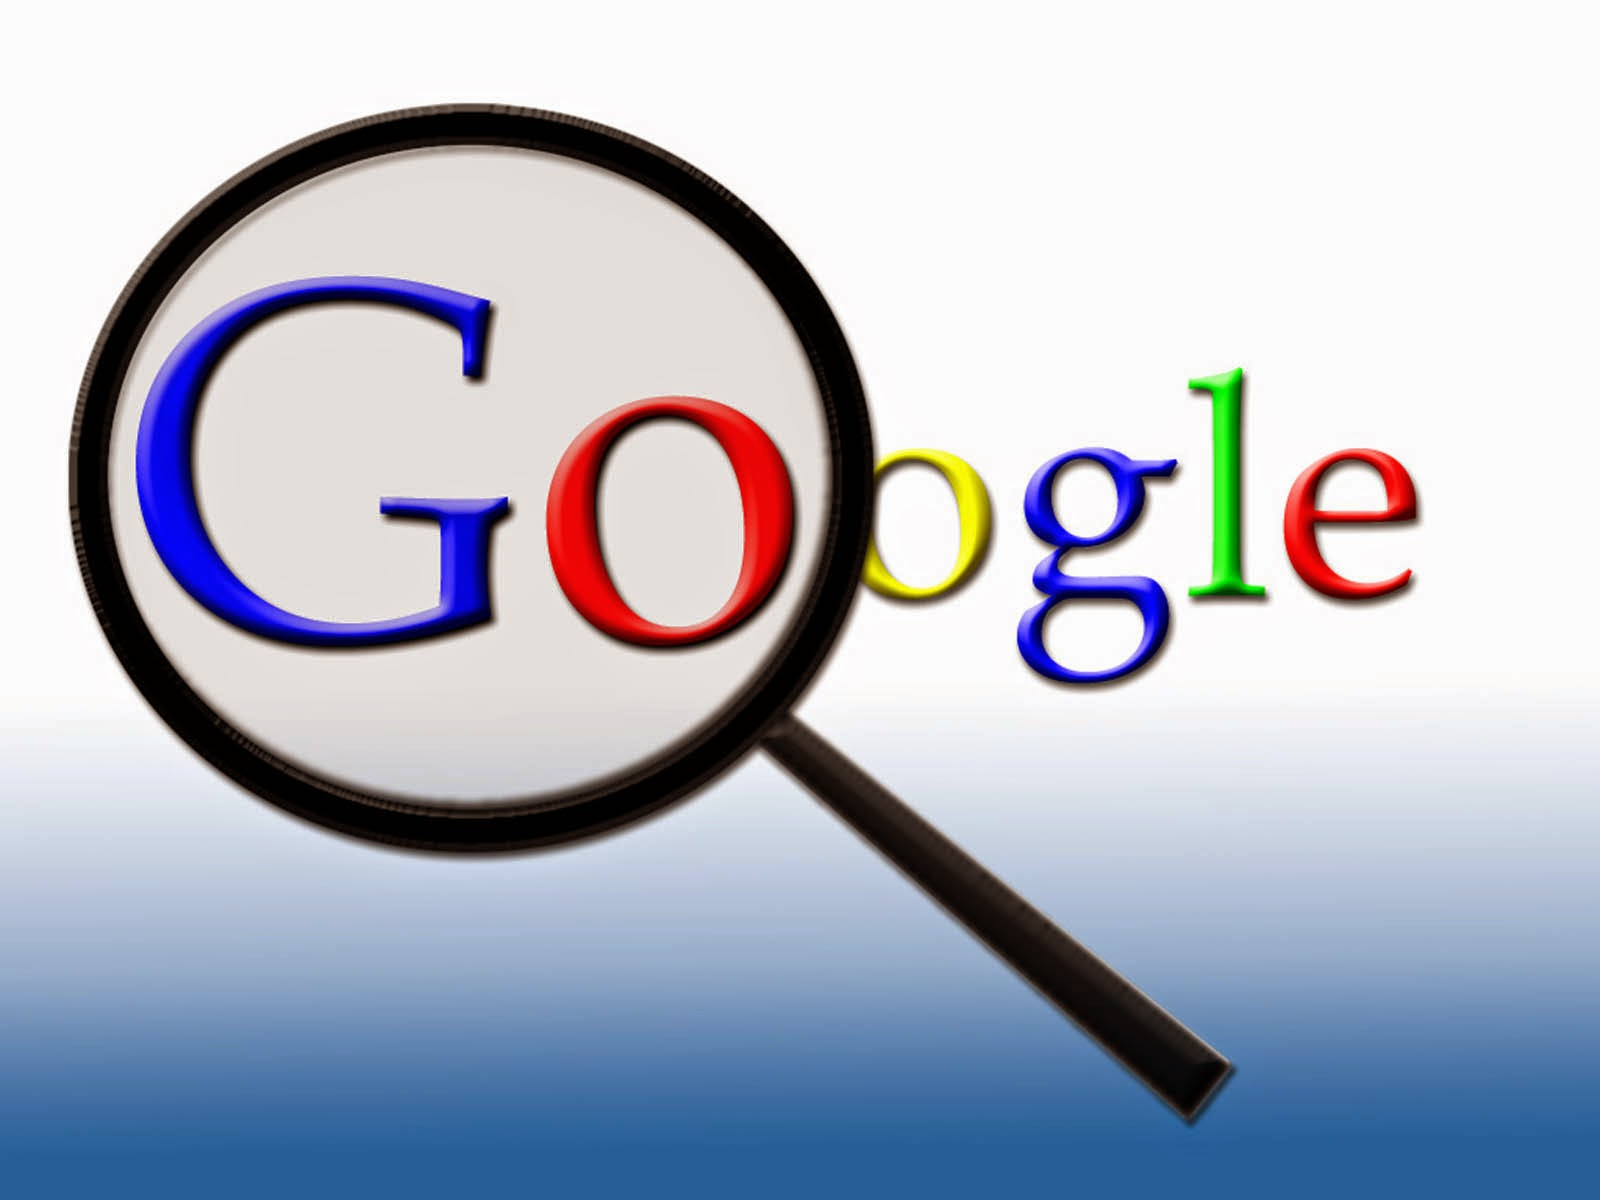 Google Offers Highly Technical Medical Data in Search Results 1